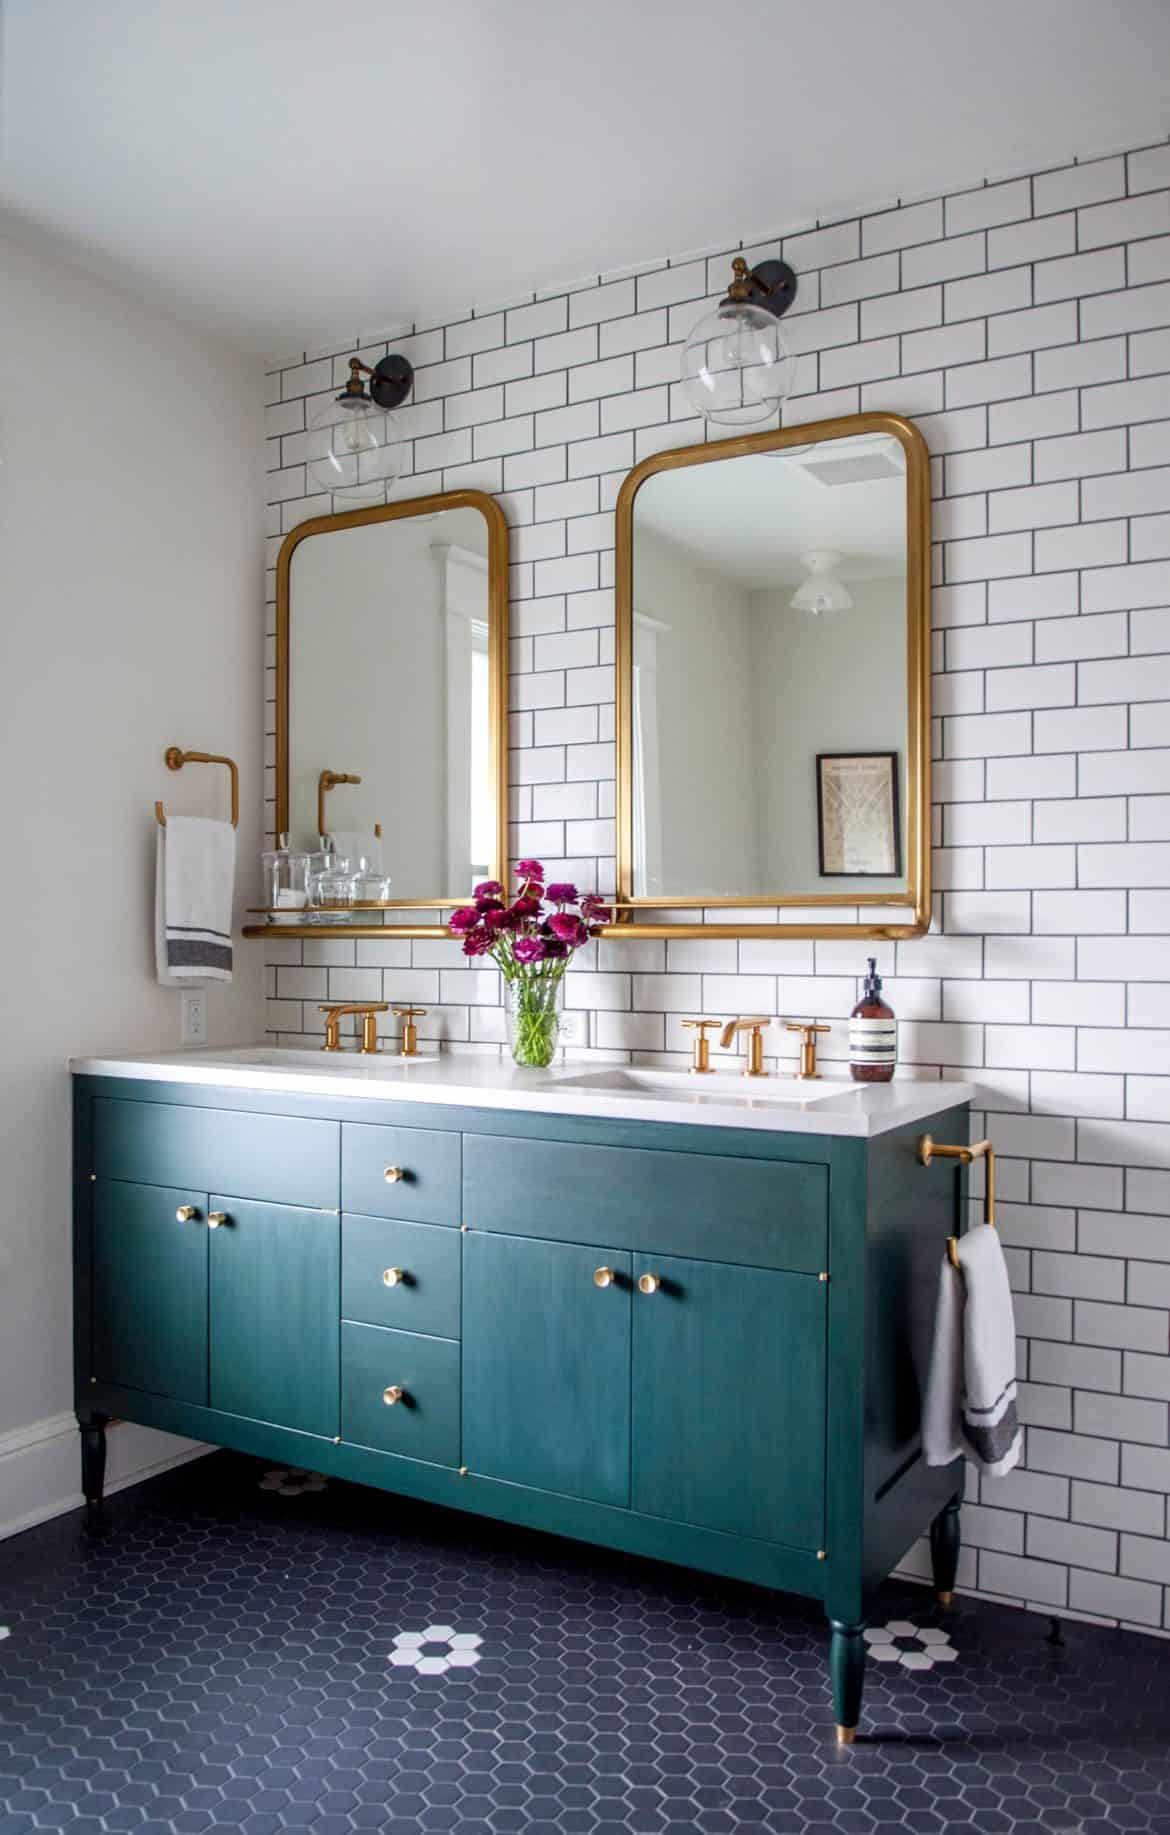 Modern Vintage Bathroom Inspiration Making Joy And Pretty Things